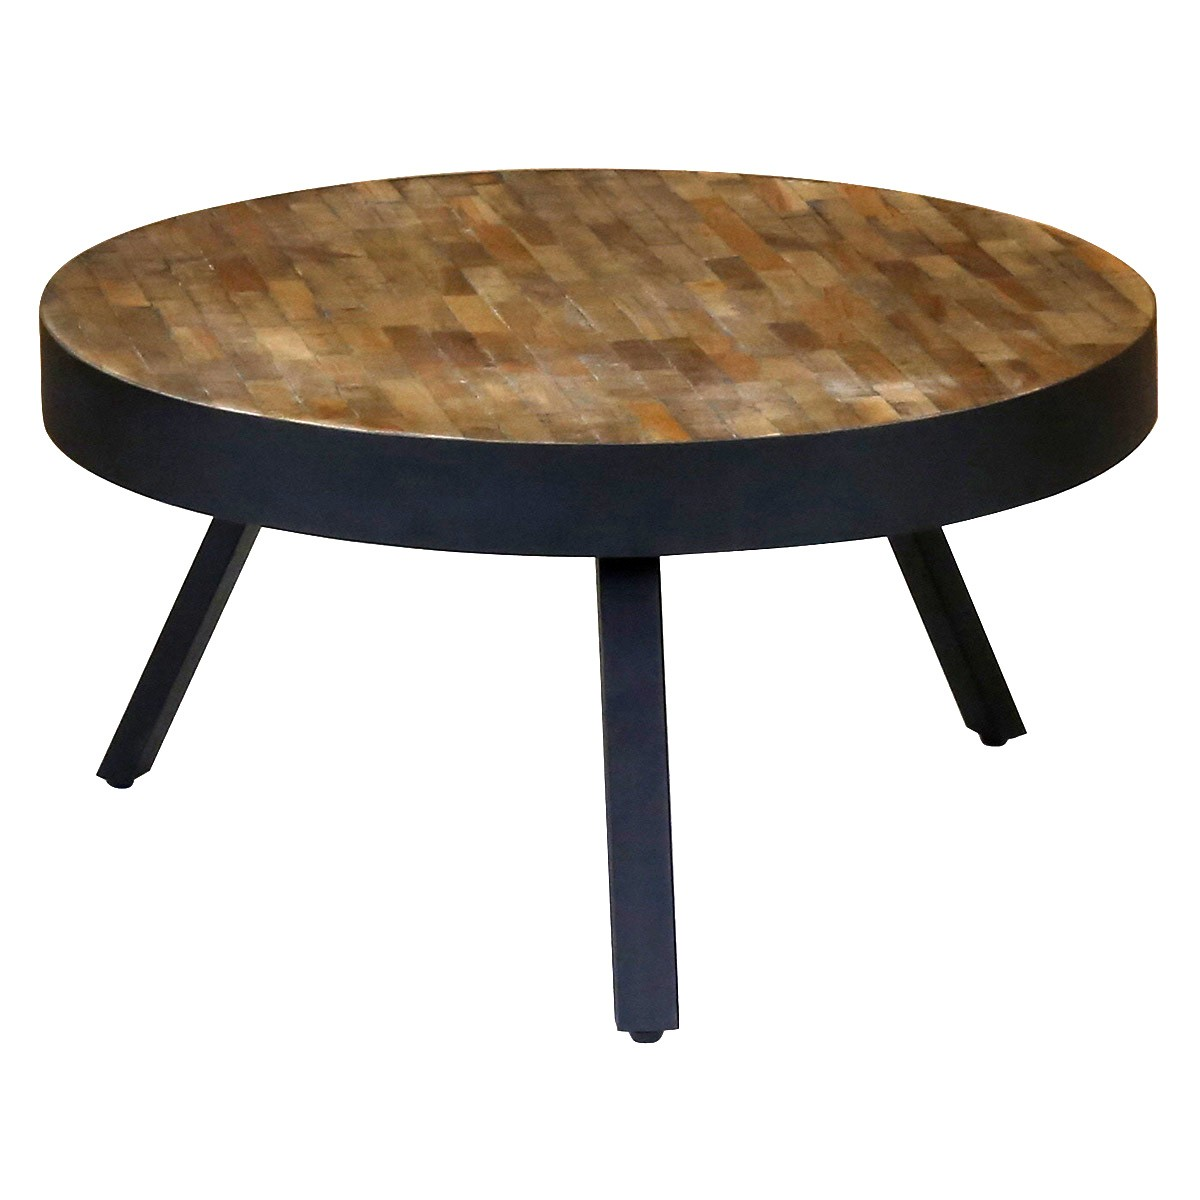 Table basse ronde teck et m tal style industriel et loft for Table basse ronde de salon